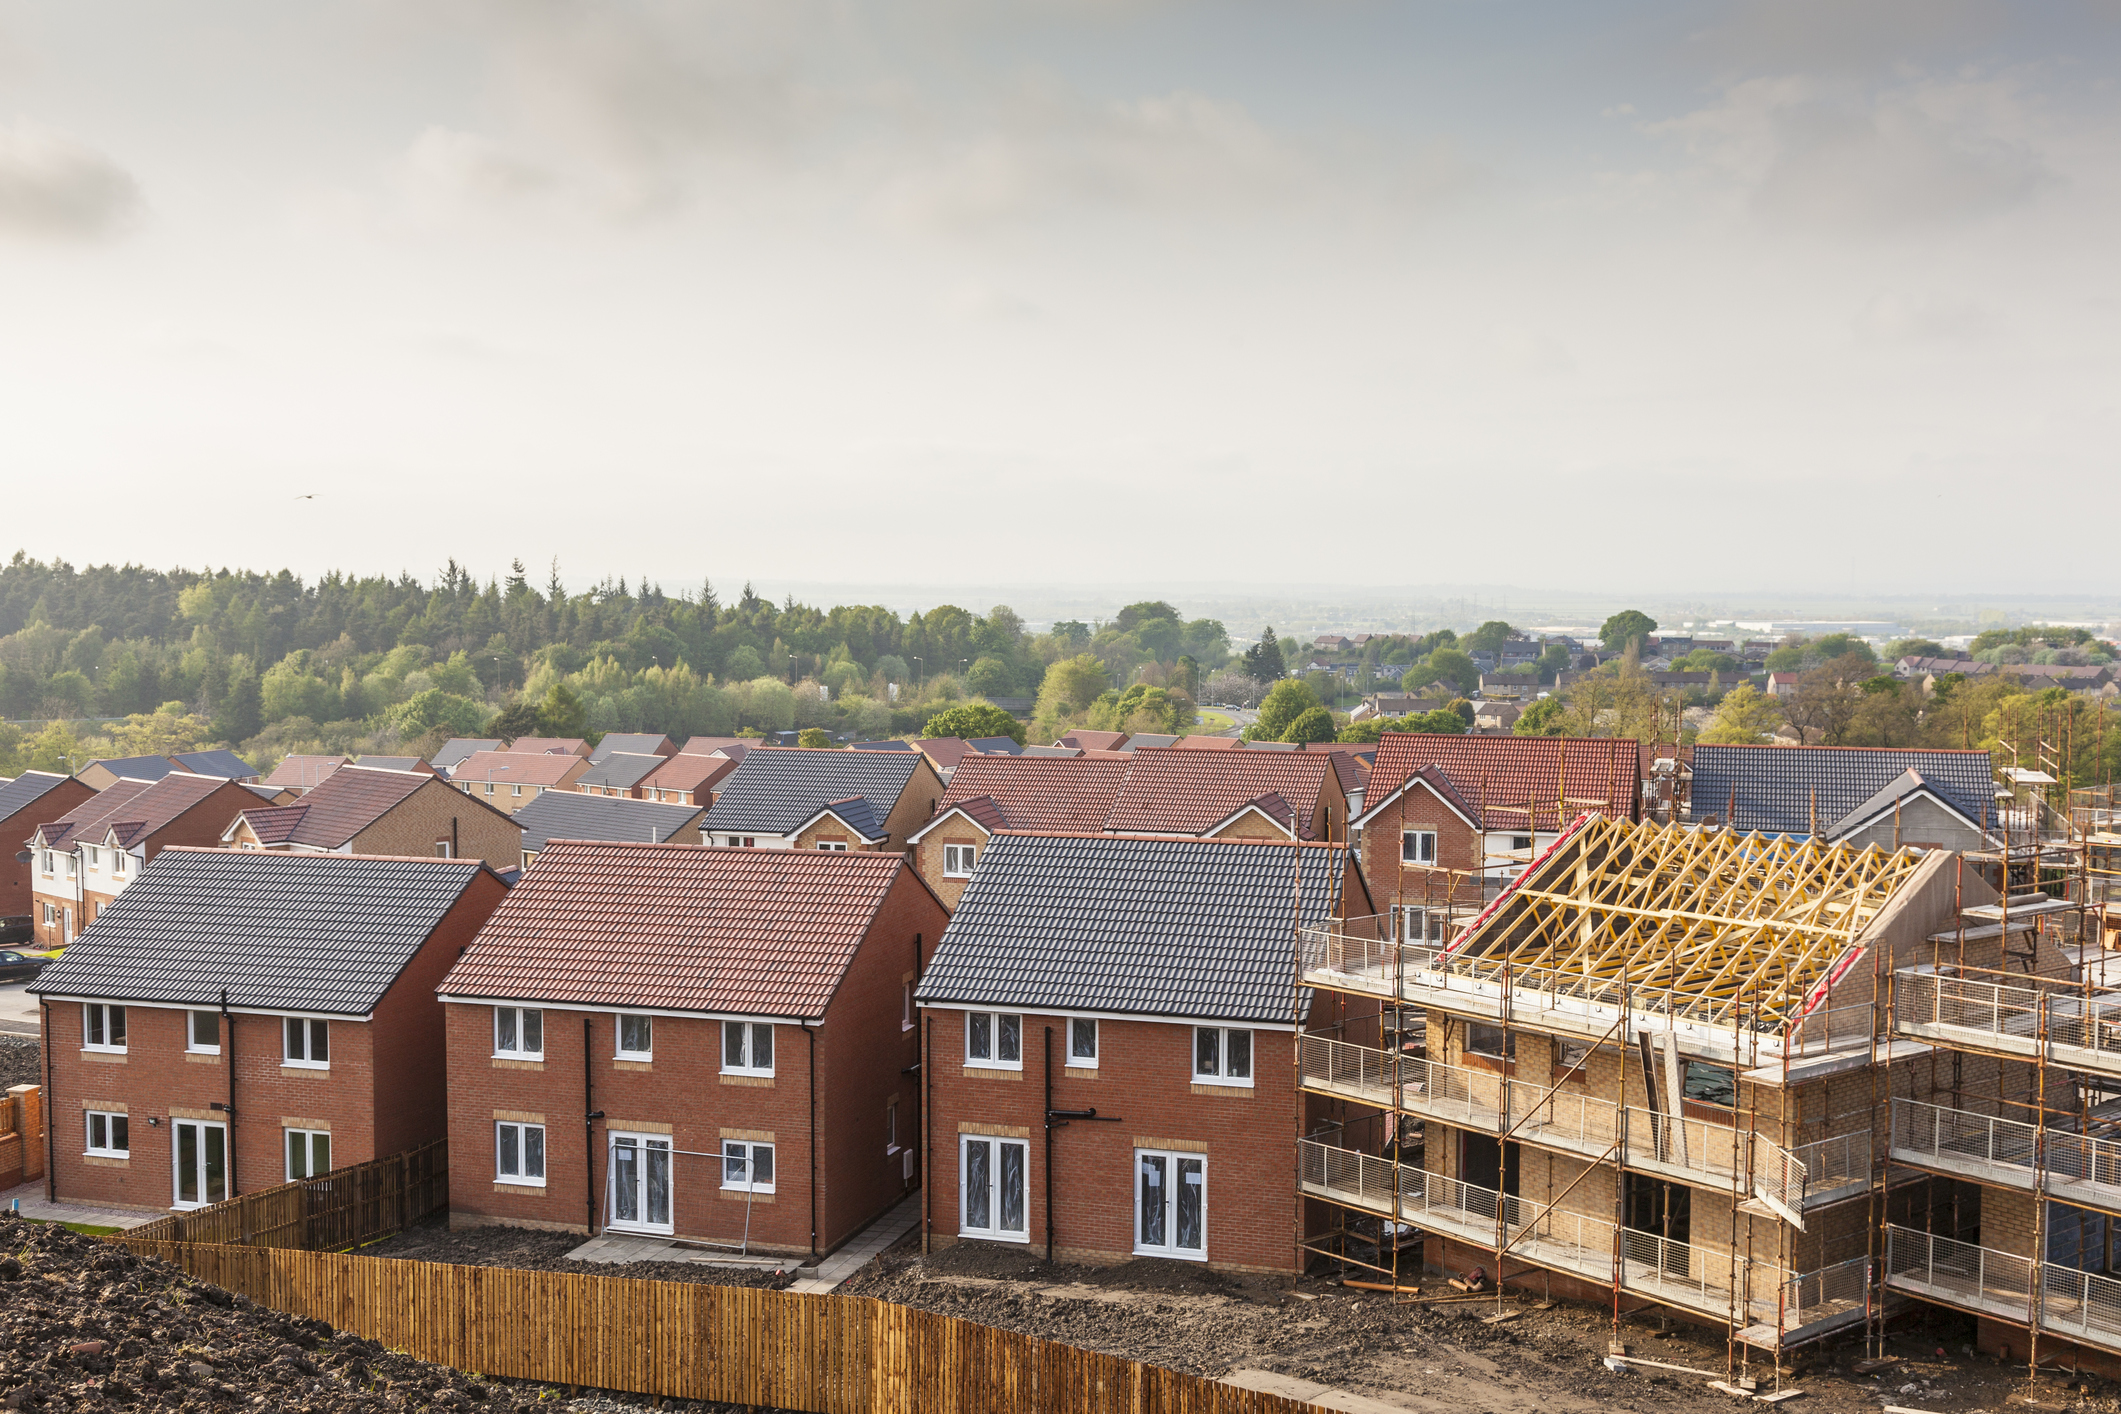 New houses being built in a new development